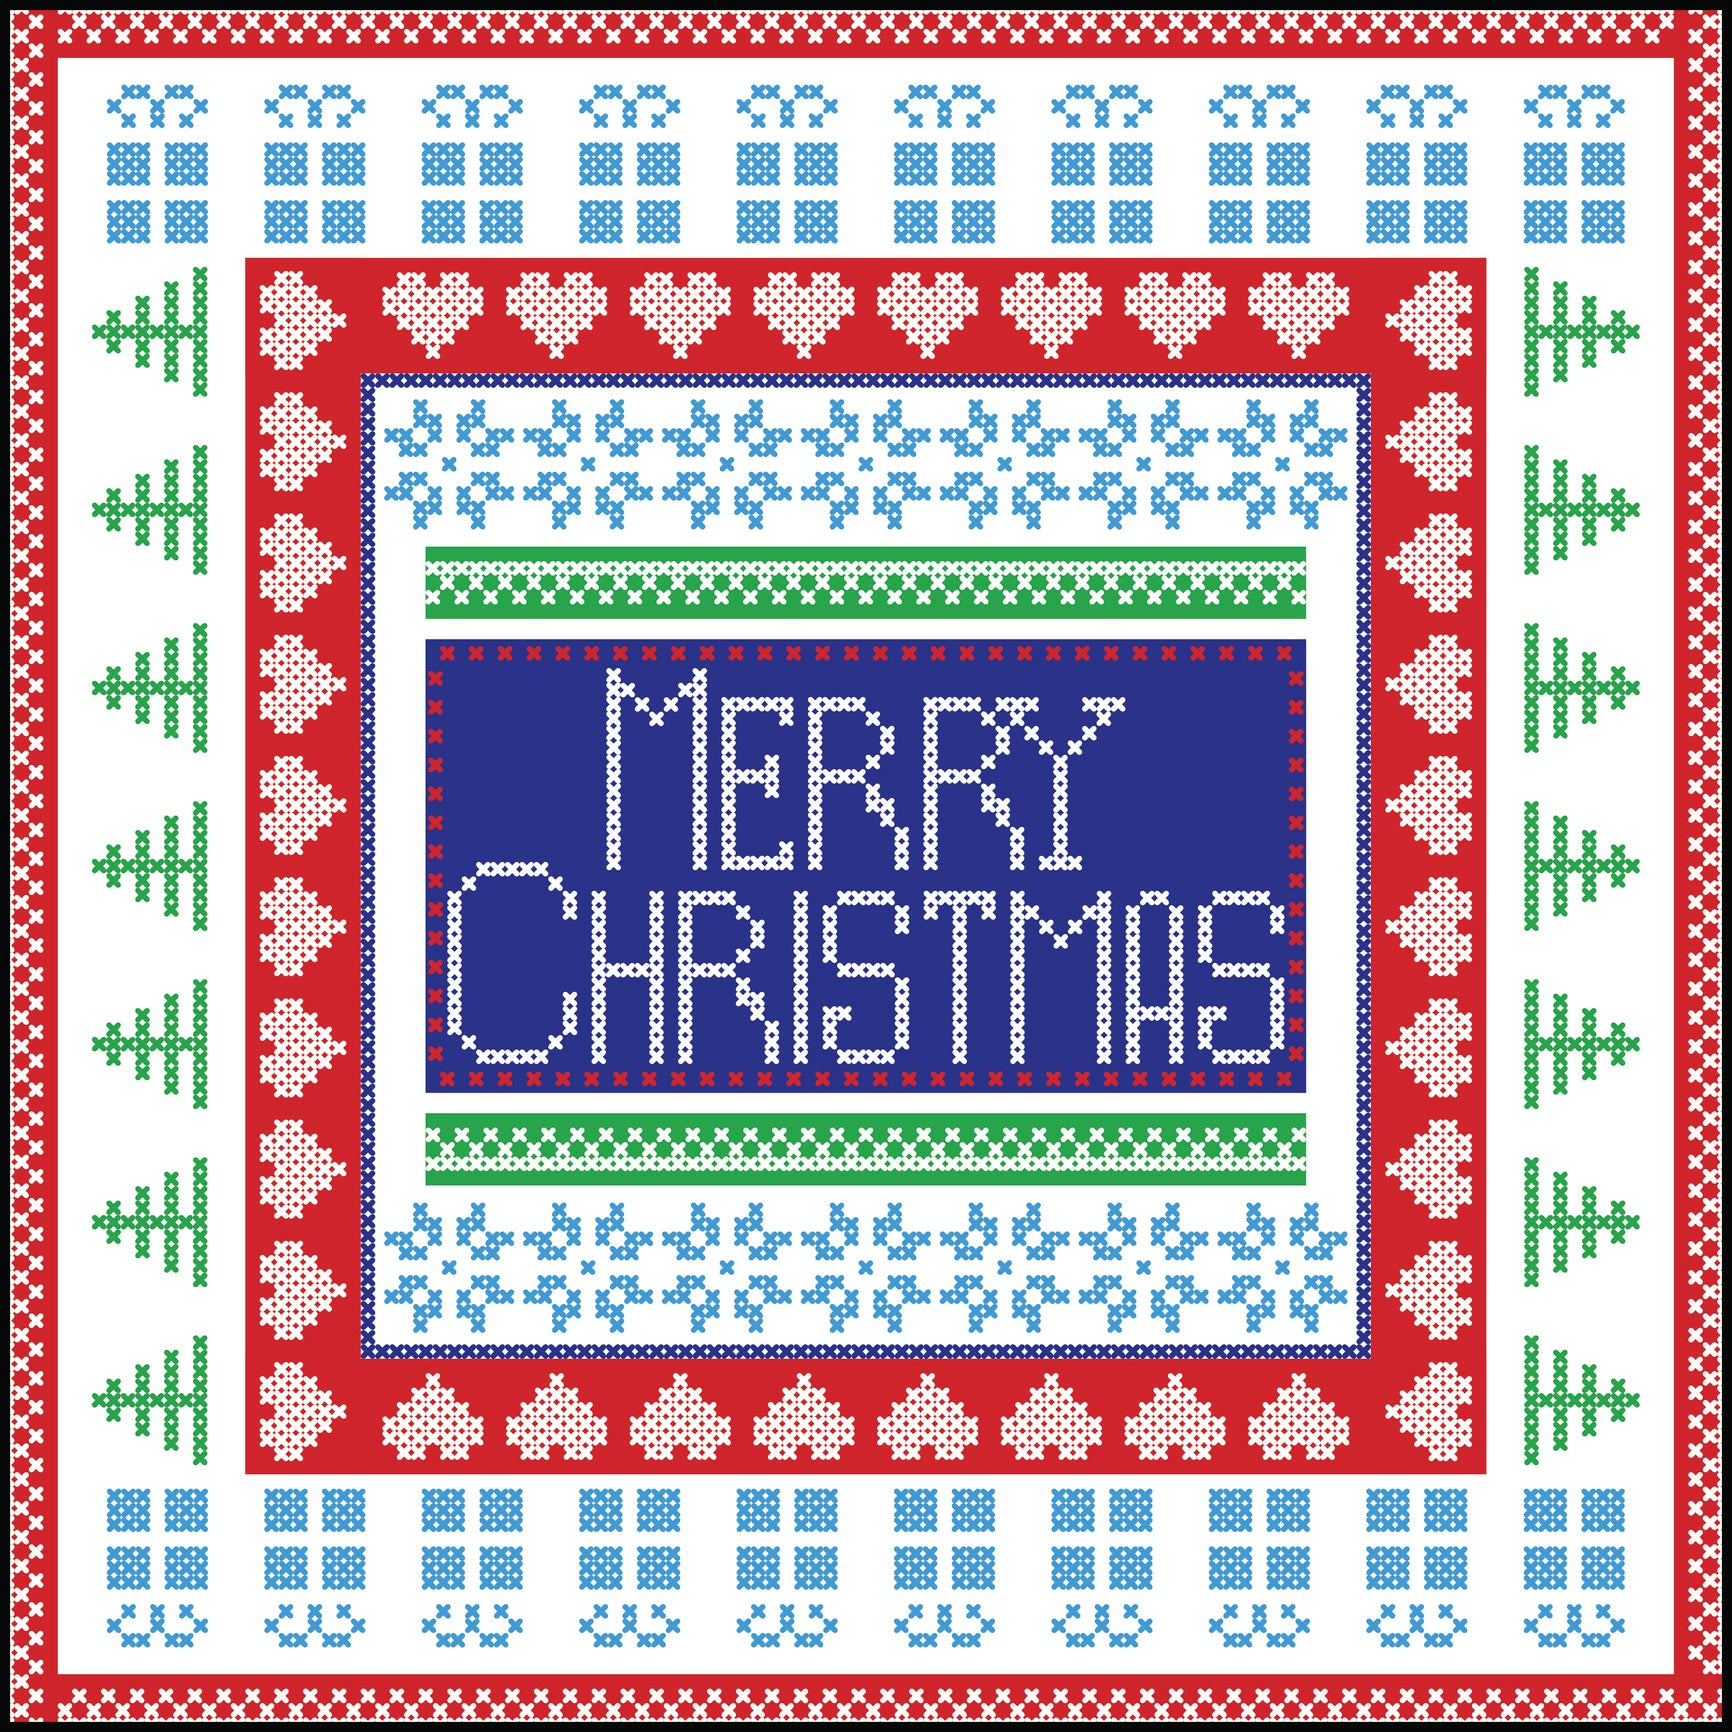 Merry Christmas Cross Stitch Quilt Square Border Around Image As Shown Vinyl Sticker